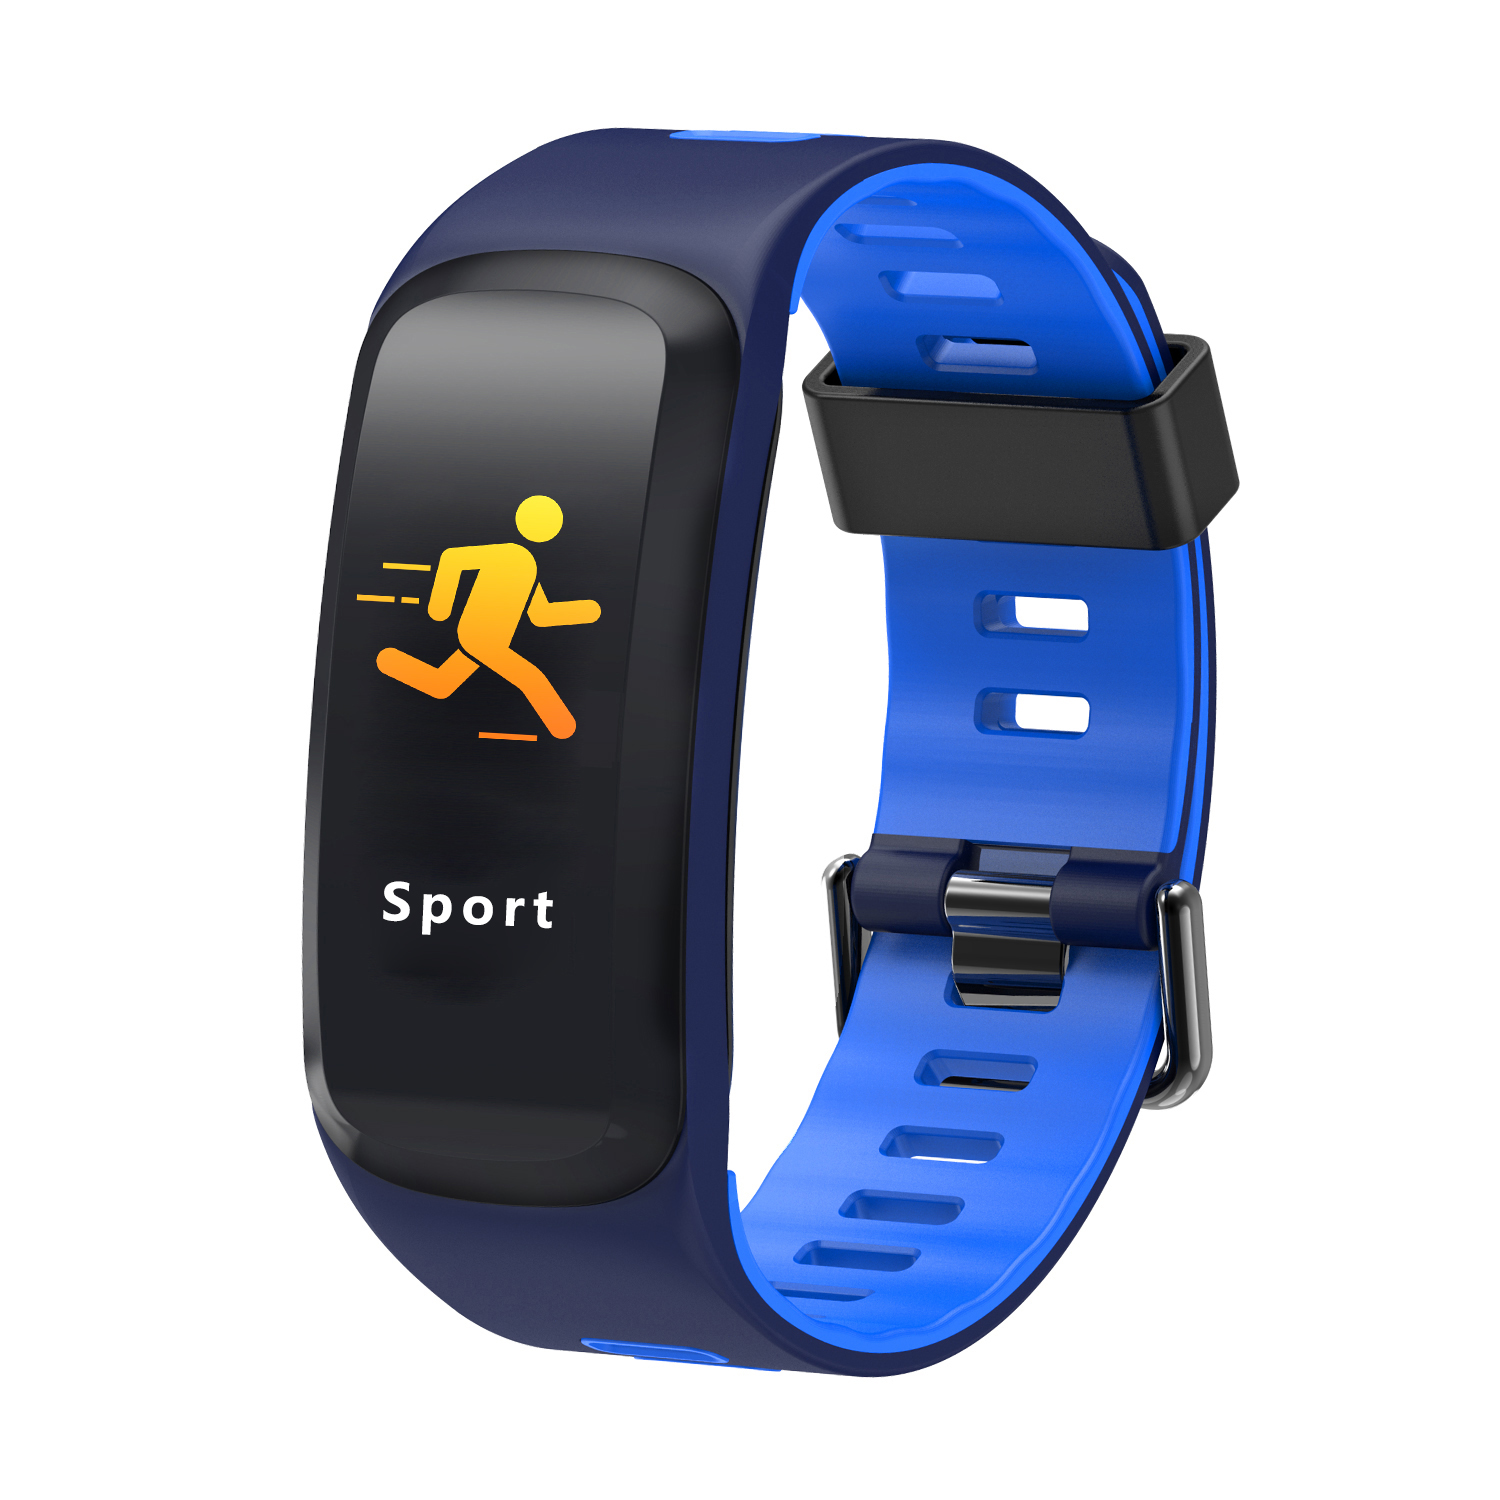 Smart Watch Men F4 Call Message Reminder Sports Watch for Android iOS Smart Wristband With Heart Rate Monitor Pedometer WatchSmart Watch Men F4 Call Message Reminder Sports Watch for Android iOS Smart Wristband With Heart Rate Monitor Pedometer Watch